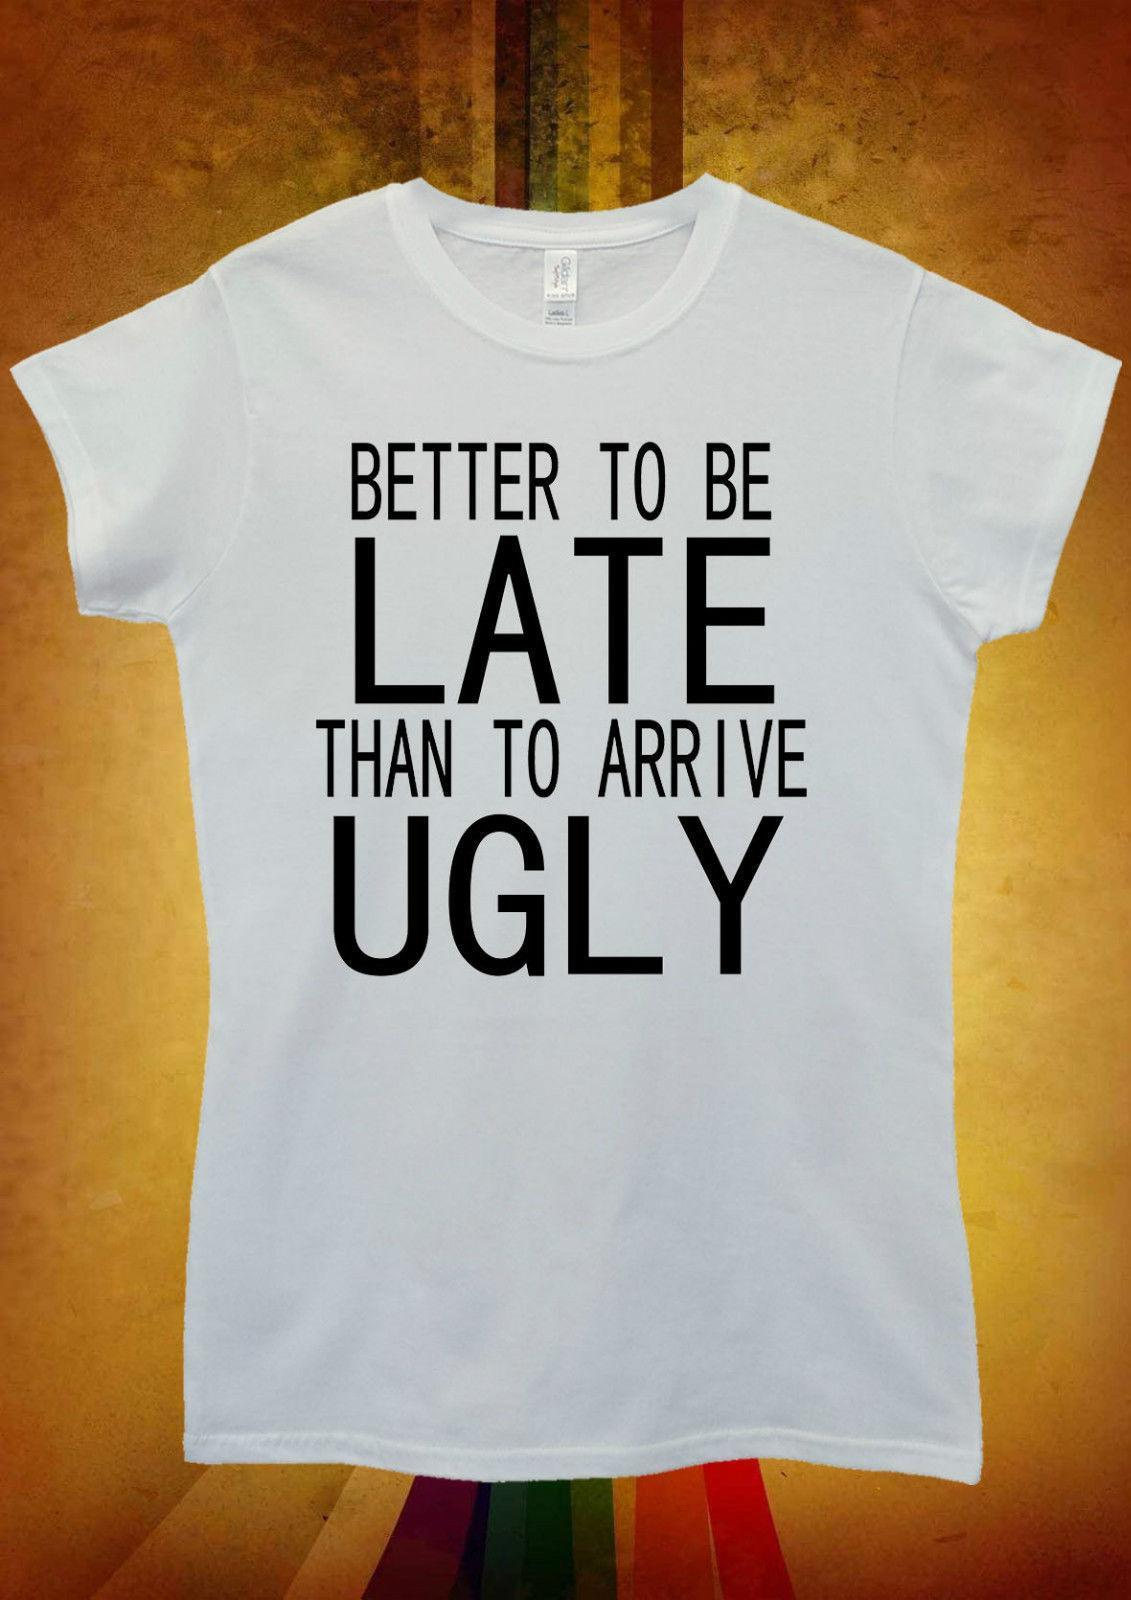 c48d0f8f2 Better To Be Late Than To Arrive Ugly Men Women Unisex T Shirt Tank Top  Vest 831 Awesome T Shirt Clever T Shirts From Yuxin002, $13.8| DHgate.Com